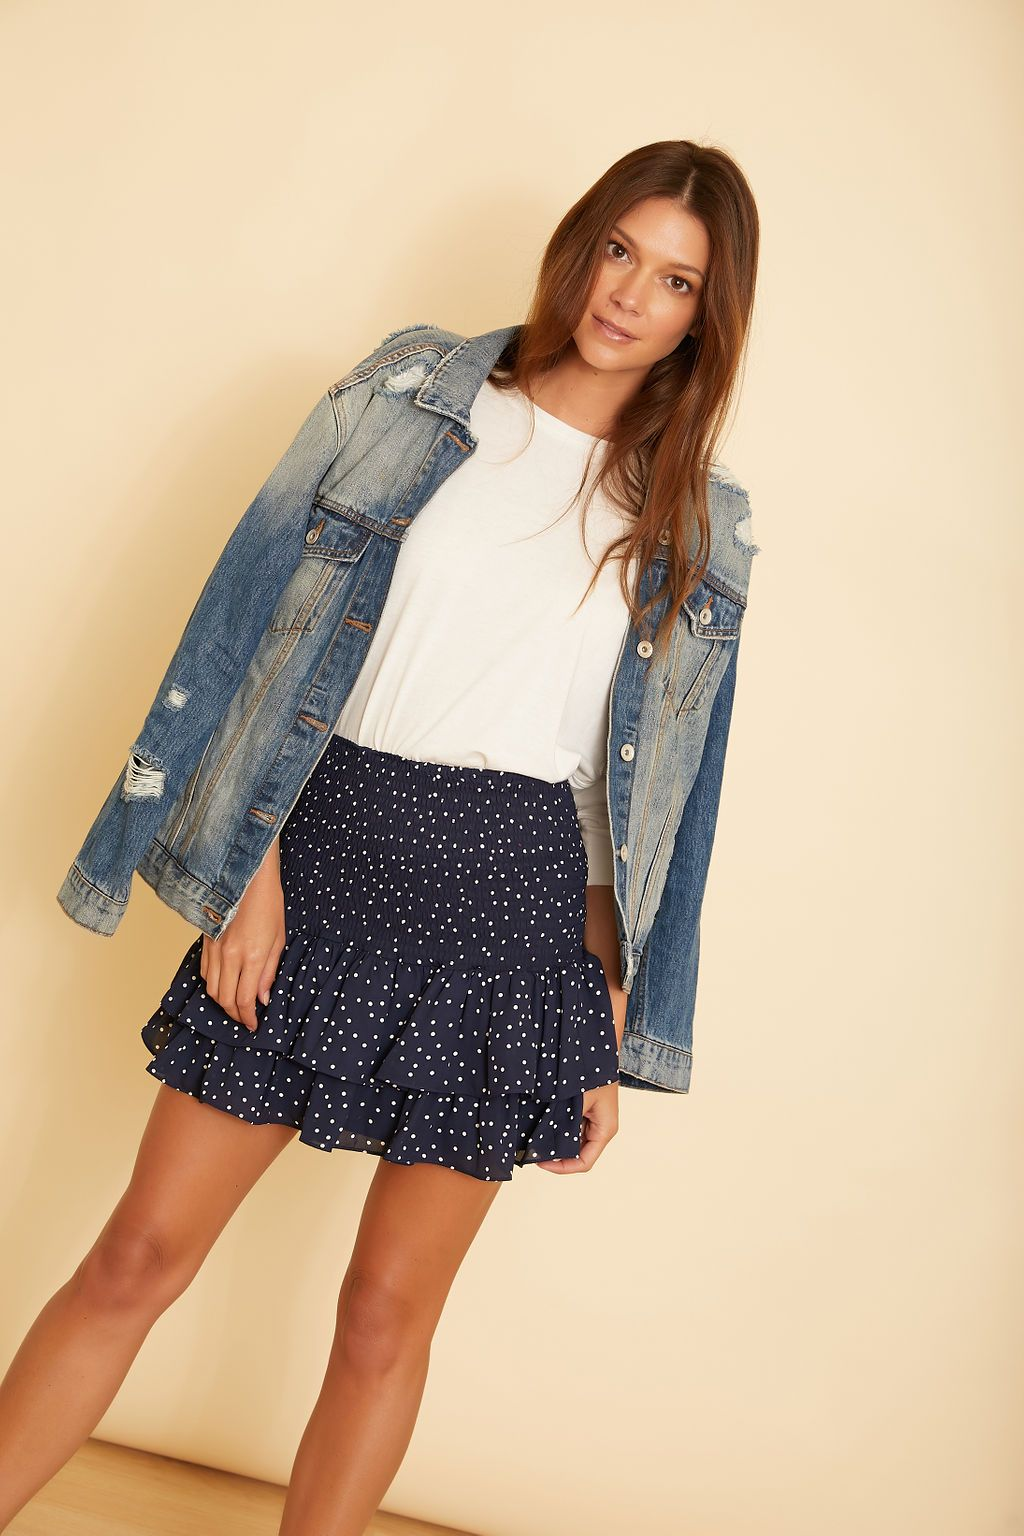 Connect the Dots Ruffle Skirt - wearNYLA